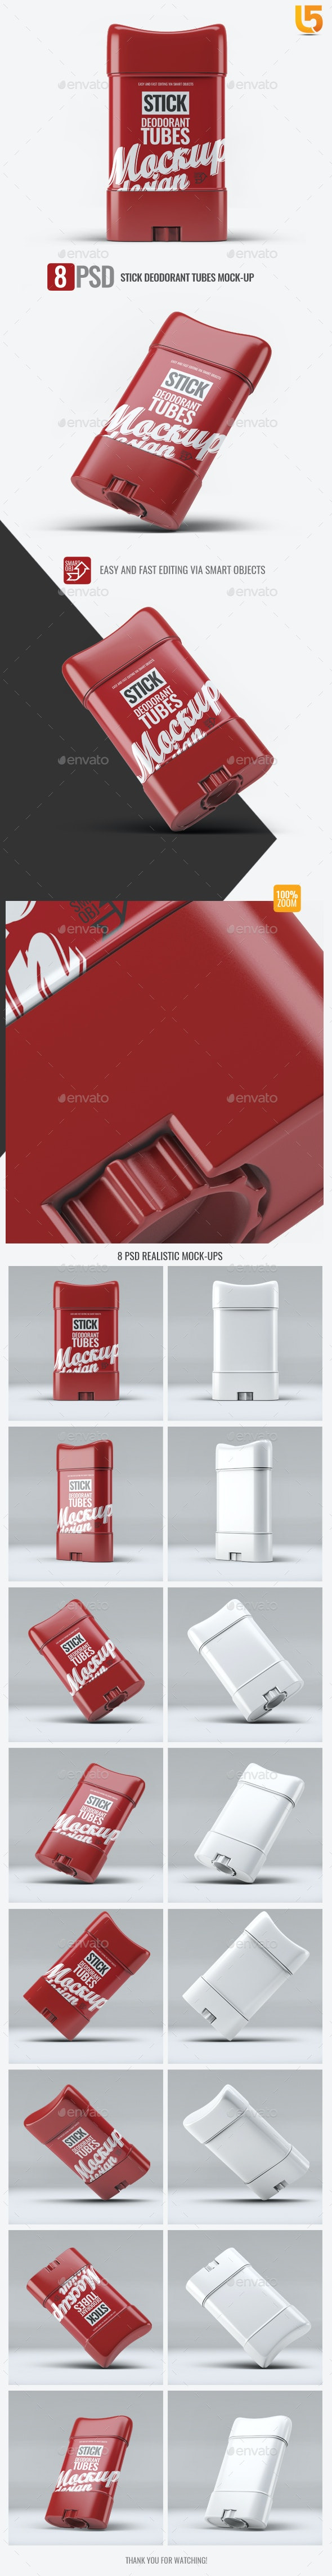 Stick Deodorant Tubes Mock-Up - Beauty Packaging